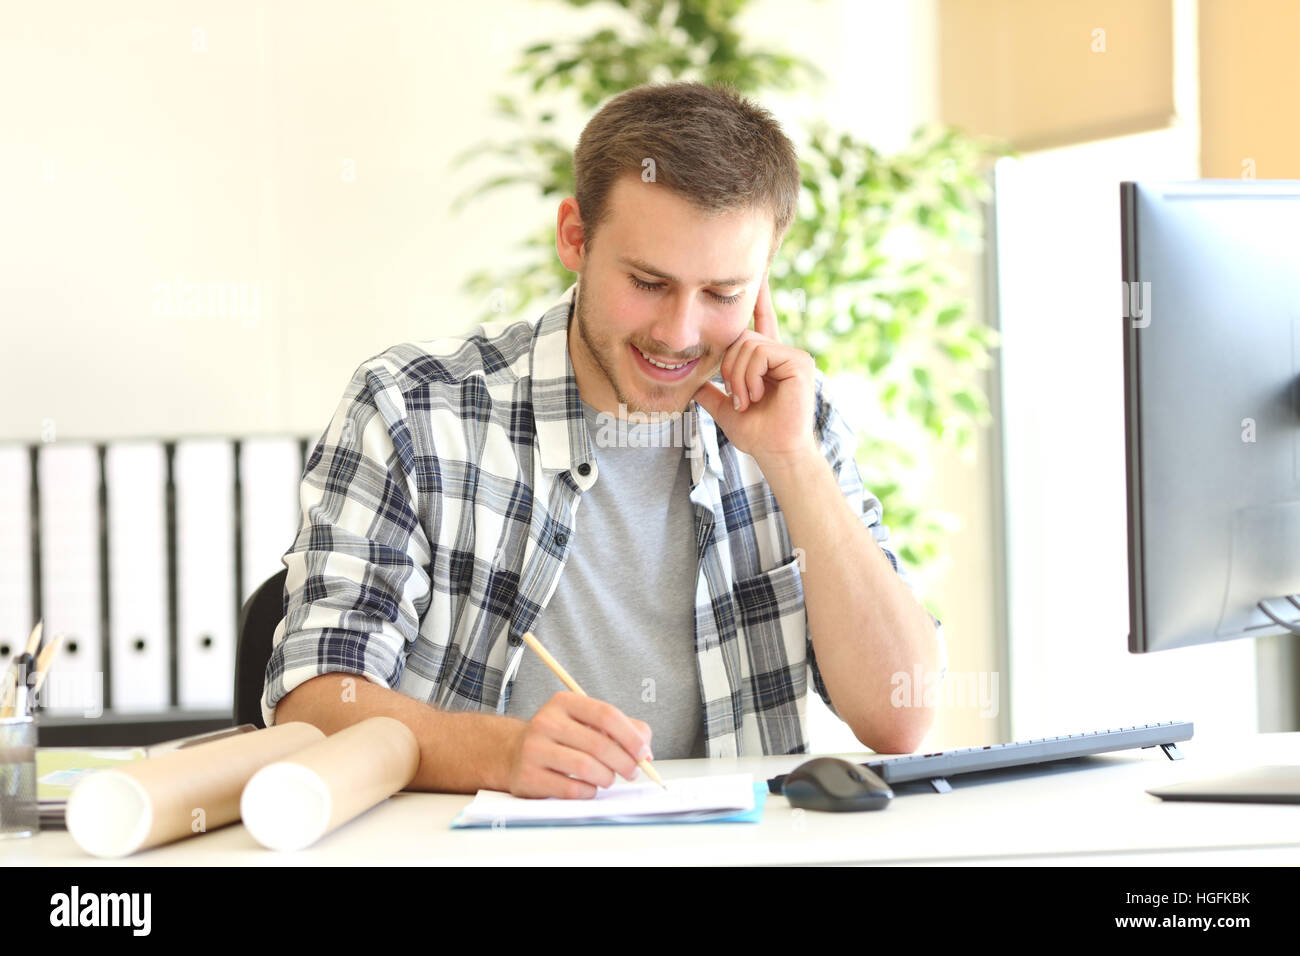 Designer or architect working writing notes at office - Stock Image